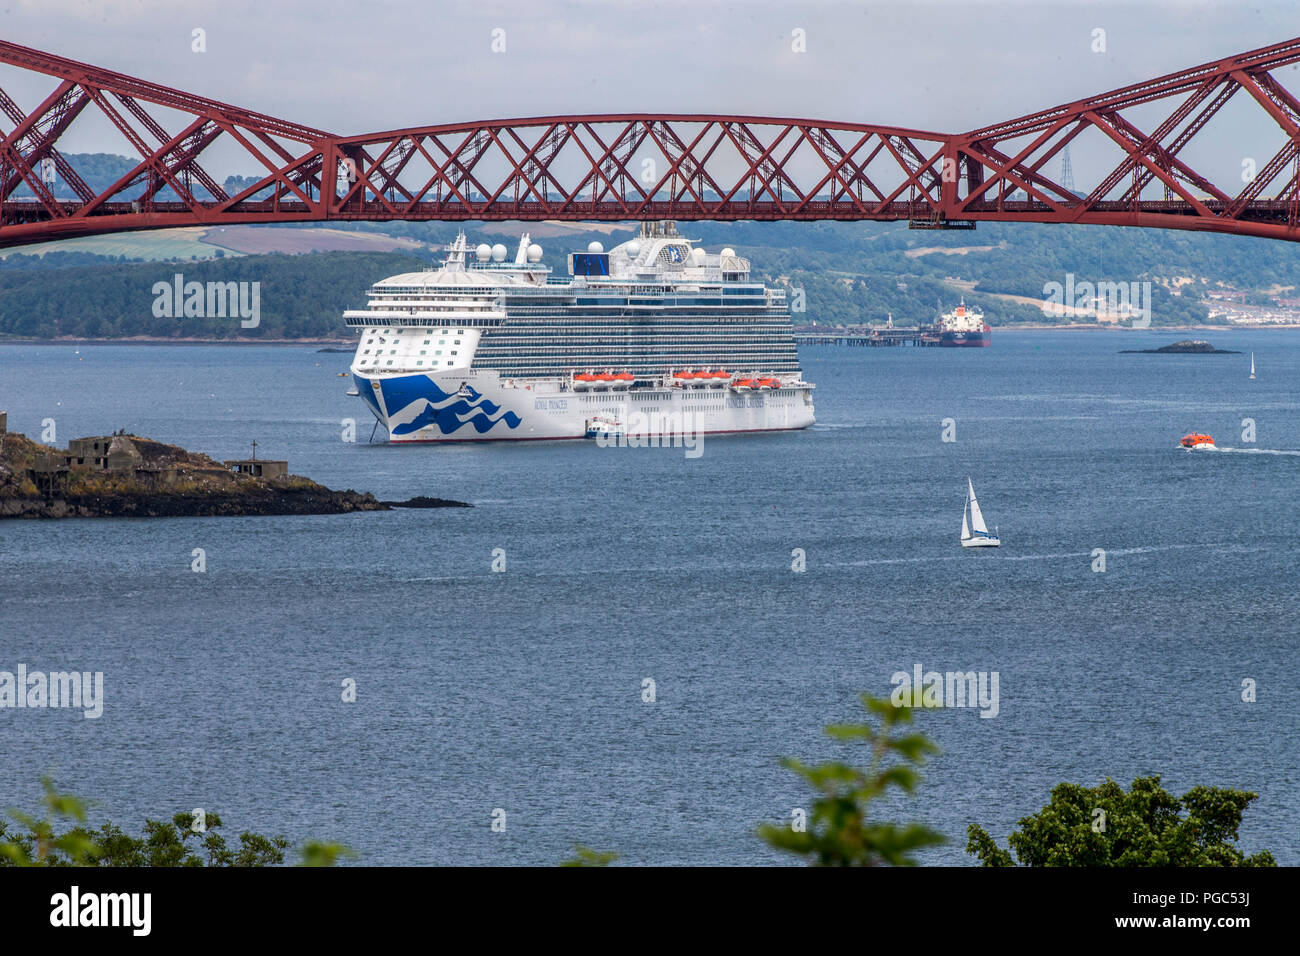 Cruise Ship on river Forth framed by Forth Bridges - Stock Image